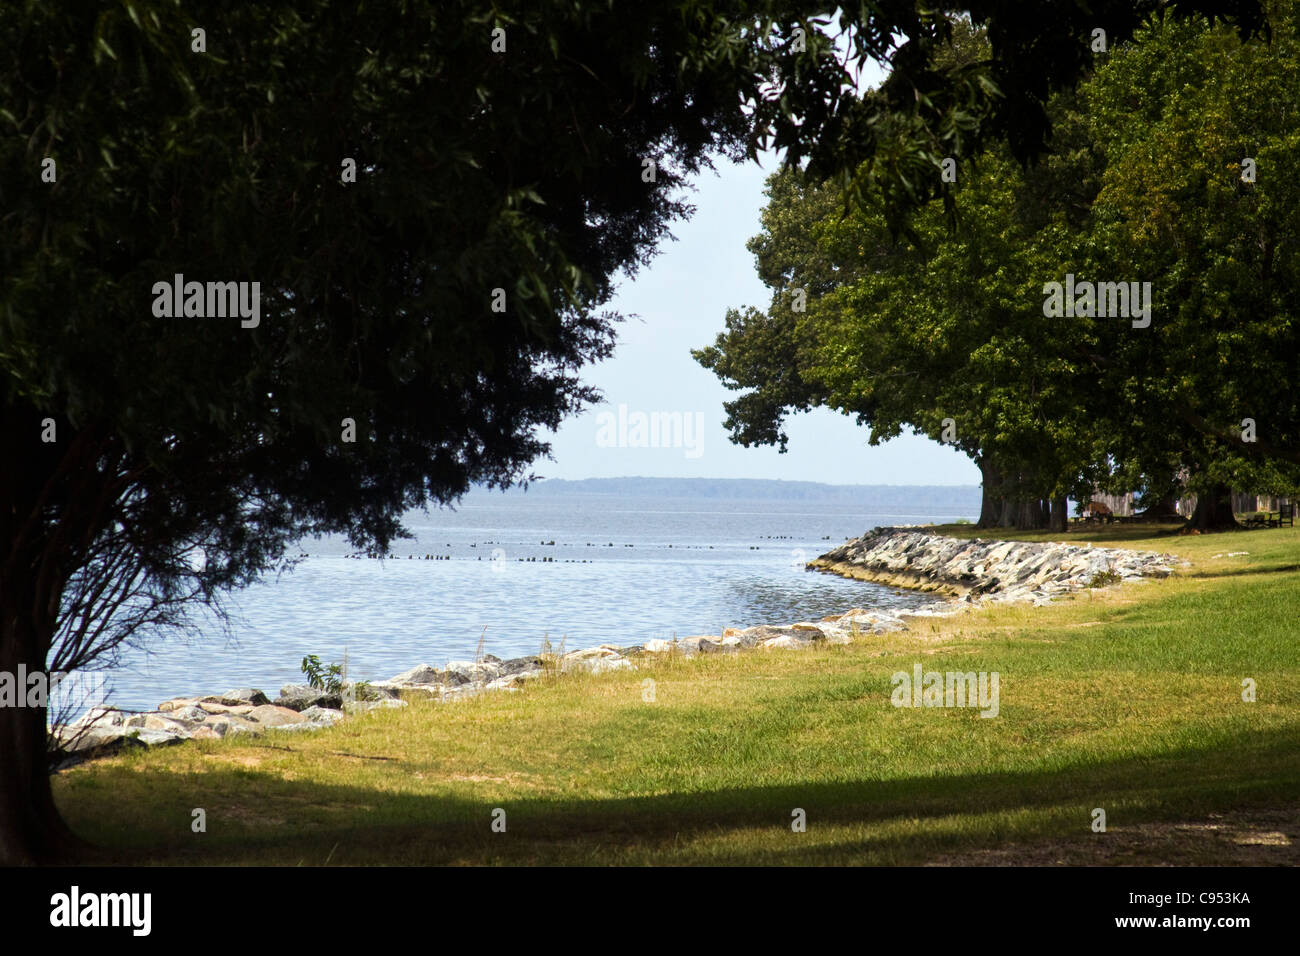 A view of James River along the riverbank of The Jamestown Island Virginia Stock Photo